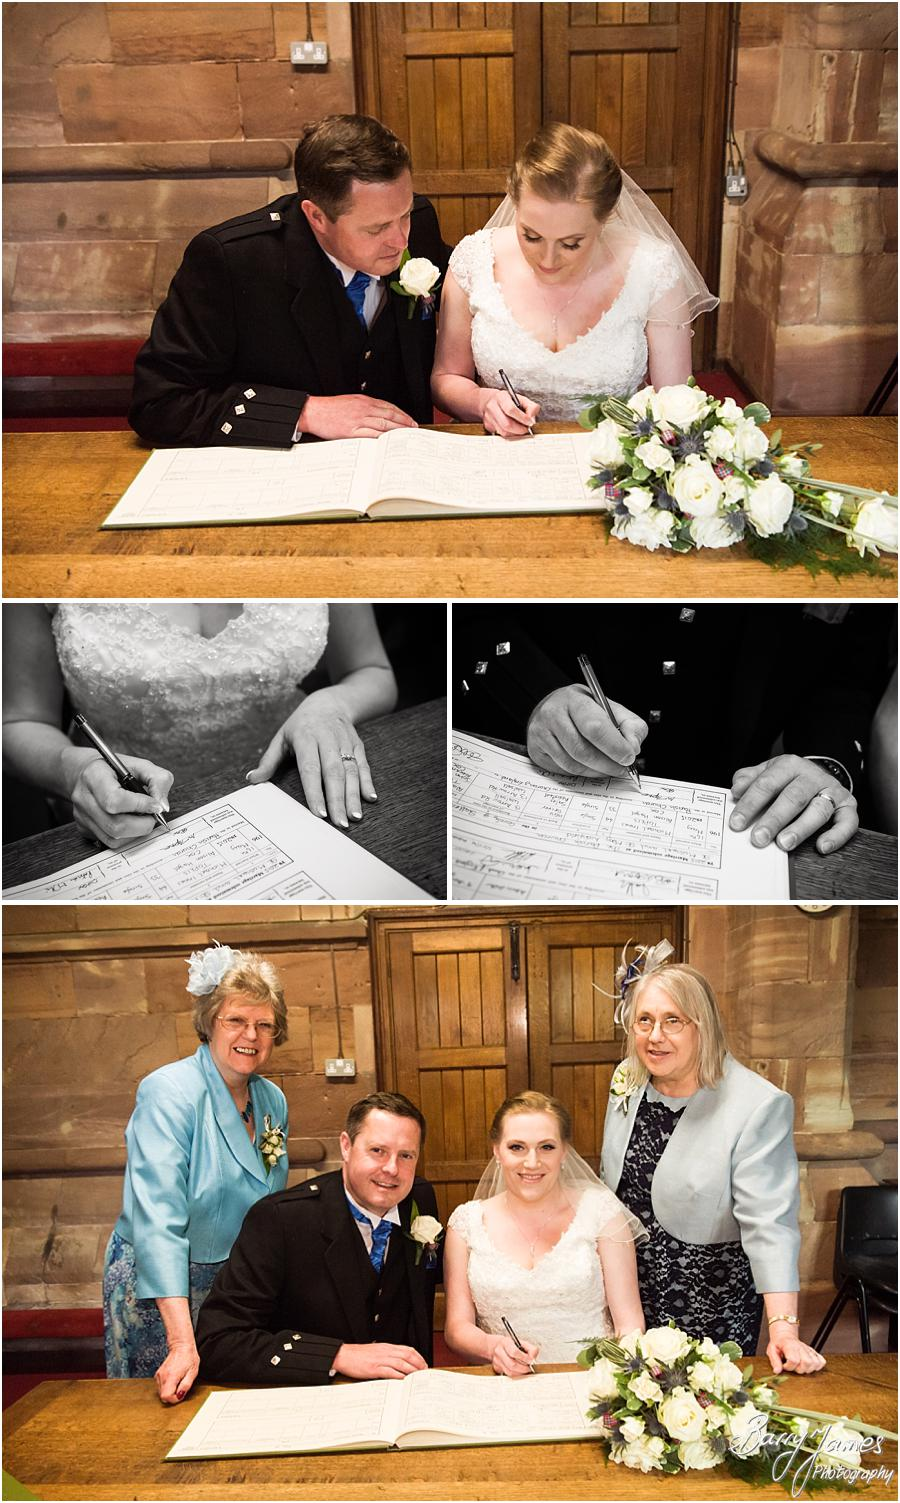 Gorgeous wedding photographs at Saint Michael Greenhill Church in Lichfield by Sutton Coldfield Wedding Photographer Barry James